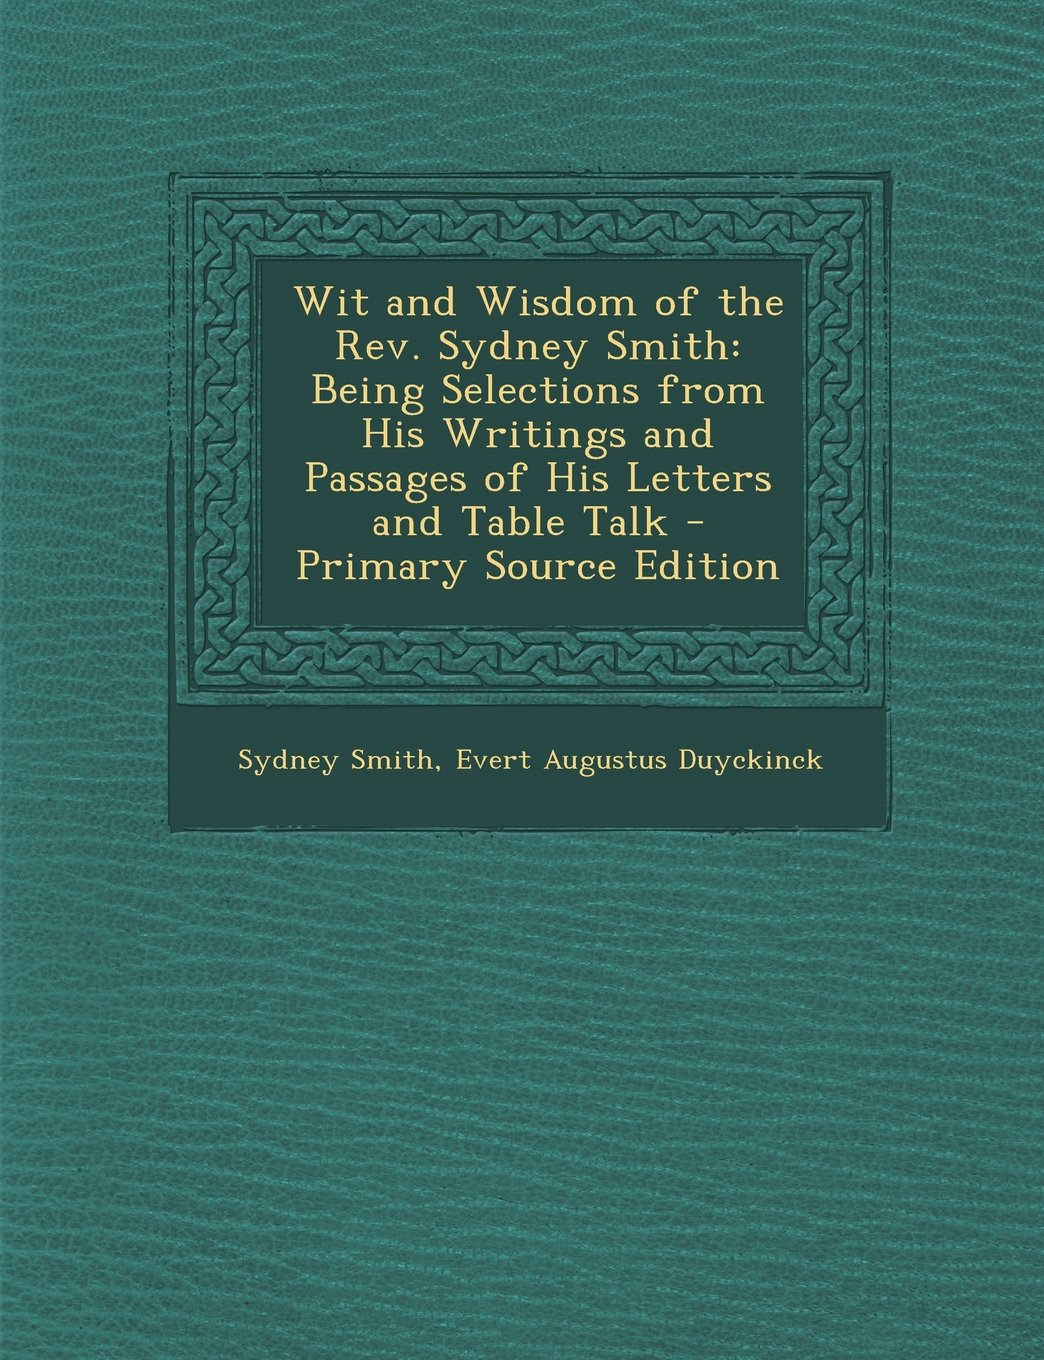 Wit and Wisdom of the Rev. Sydney Smith: Being Selections from His Writings and Passages of His Letters and Table Talk - Primary Source Edition (German Edition) pdf epub